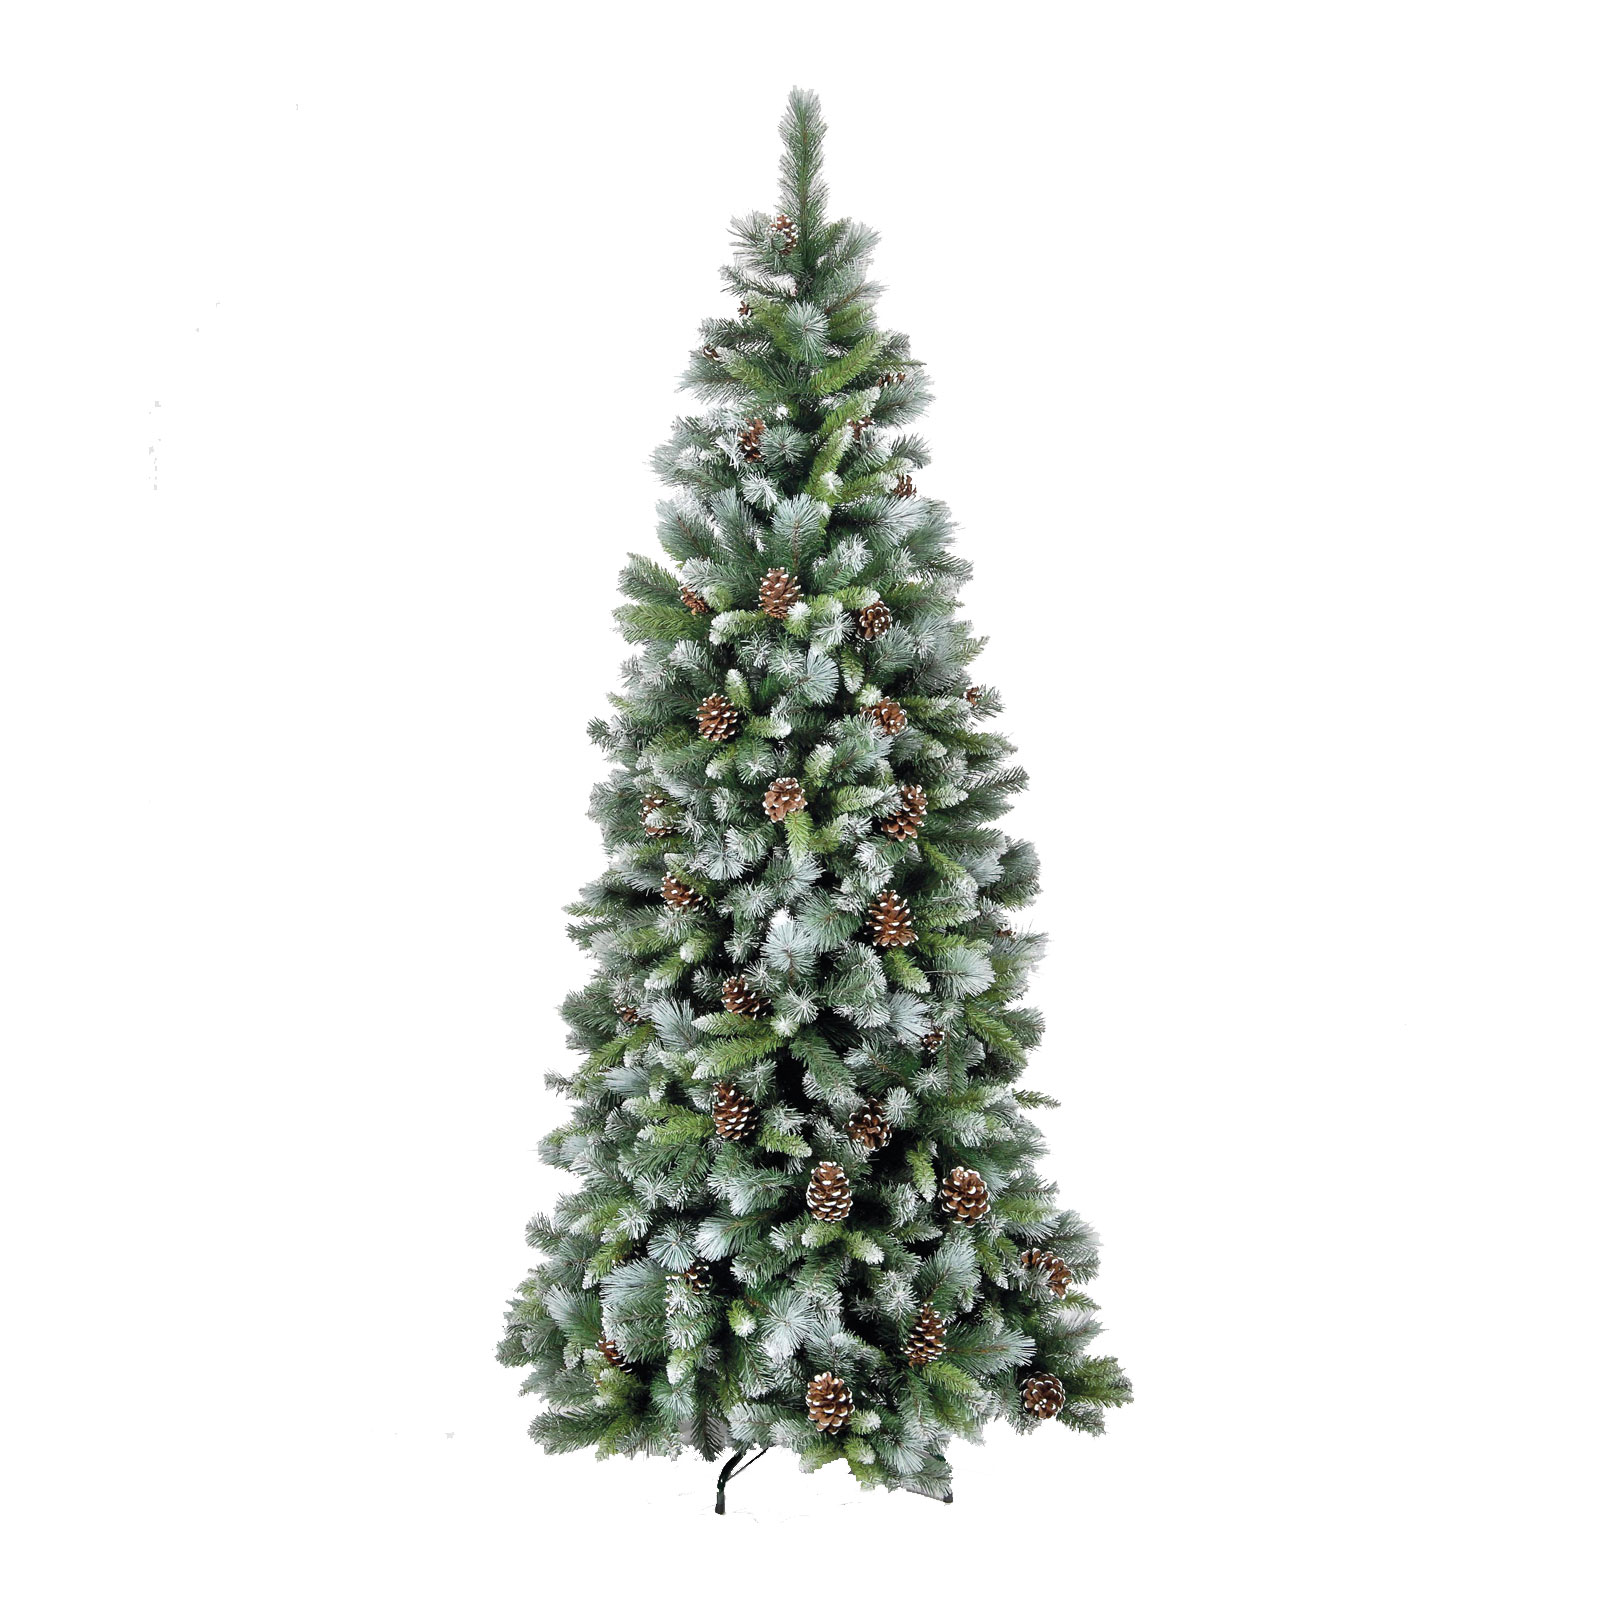 Ebay Christmas Tree: 5ft Frosted Glacier Artificial Christmas Tree